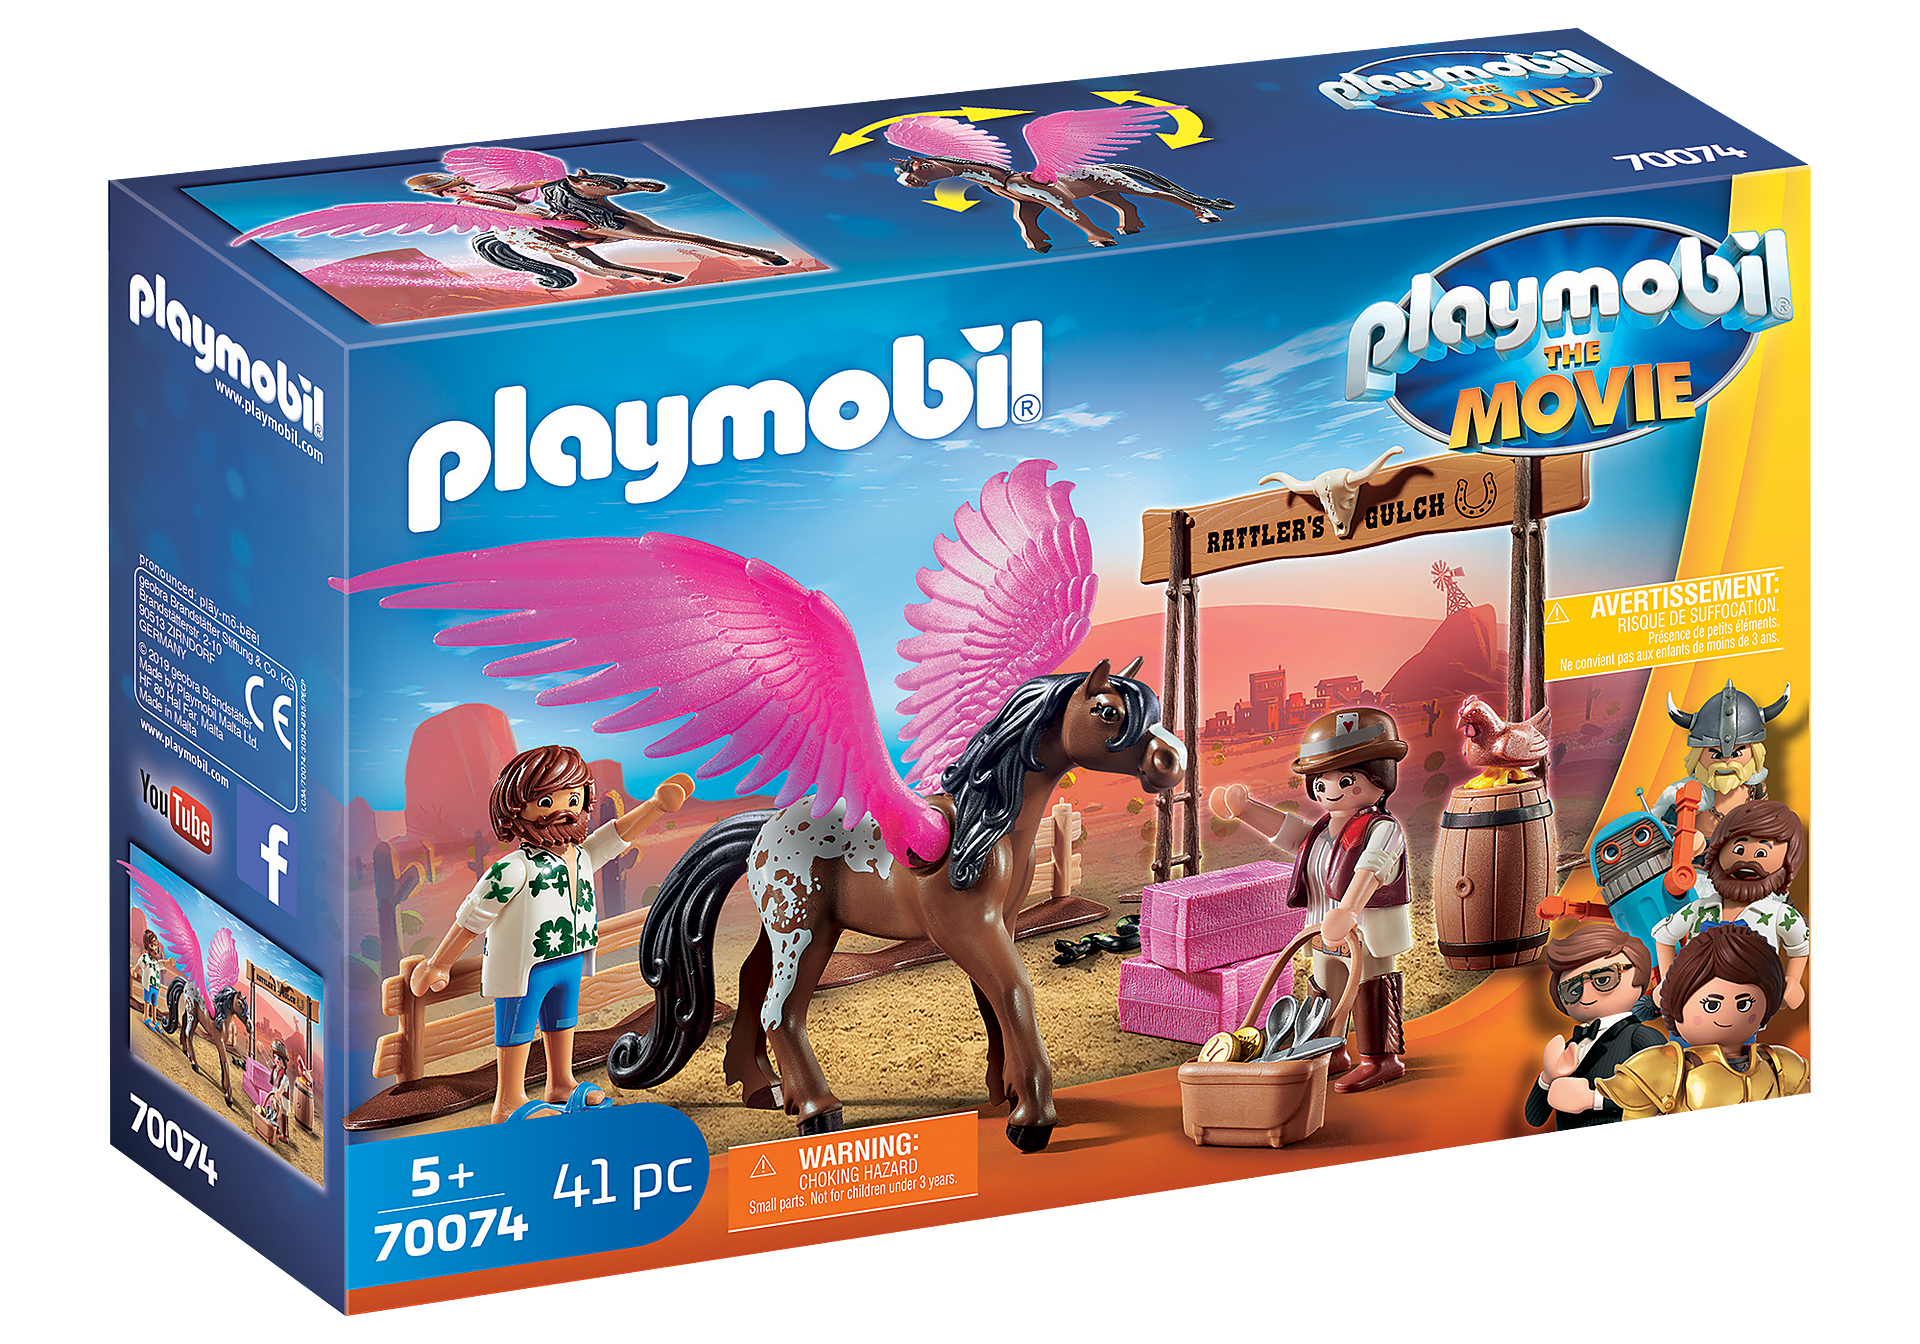 http://media.playmobil.com/i/playmobil/70074_product_box_front/PLAYMOBIL: THE MOVIE Marla en Del met gevleugeld paard